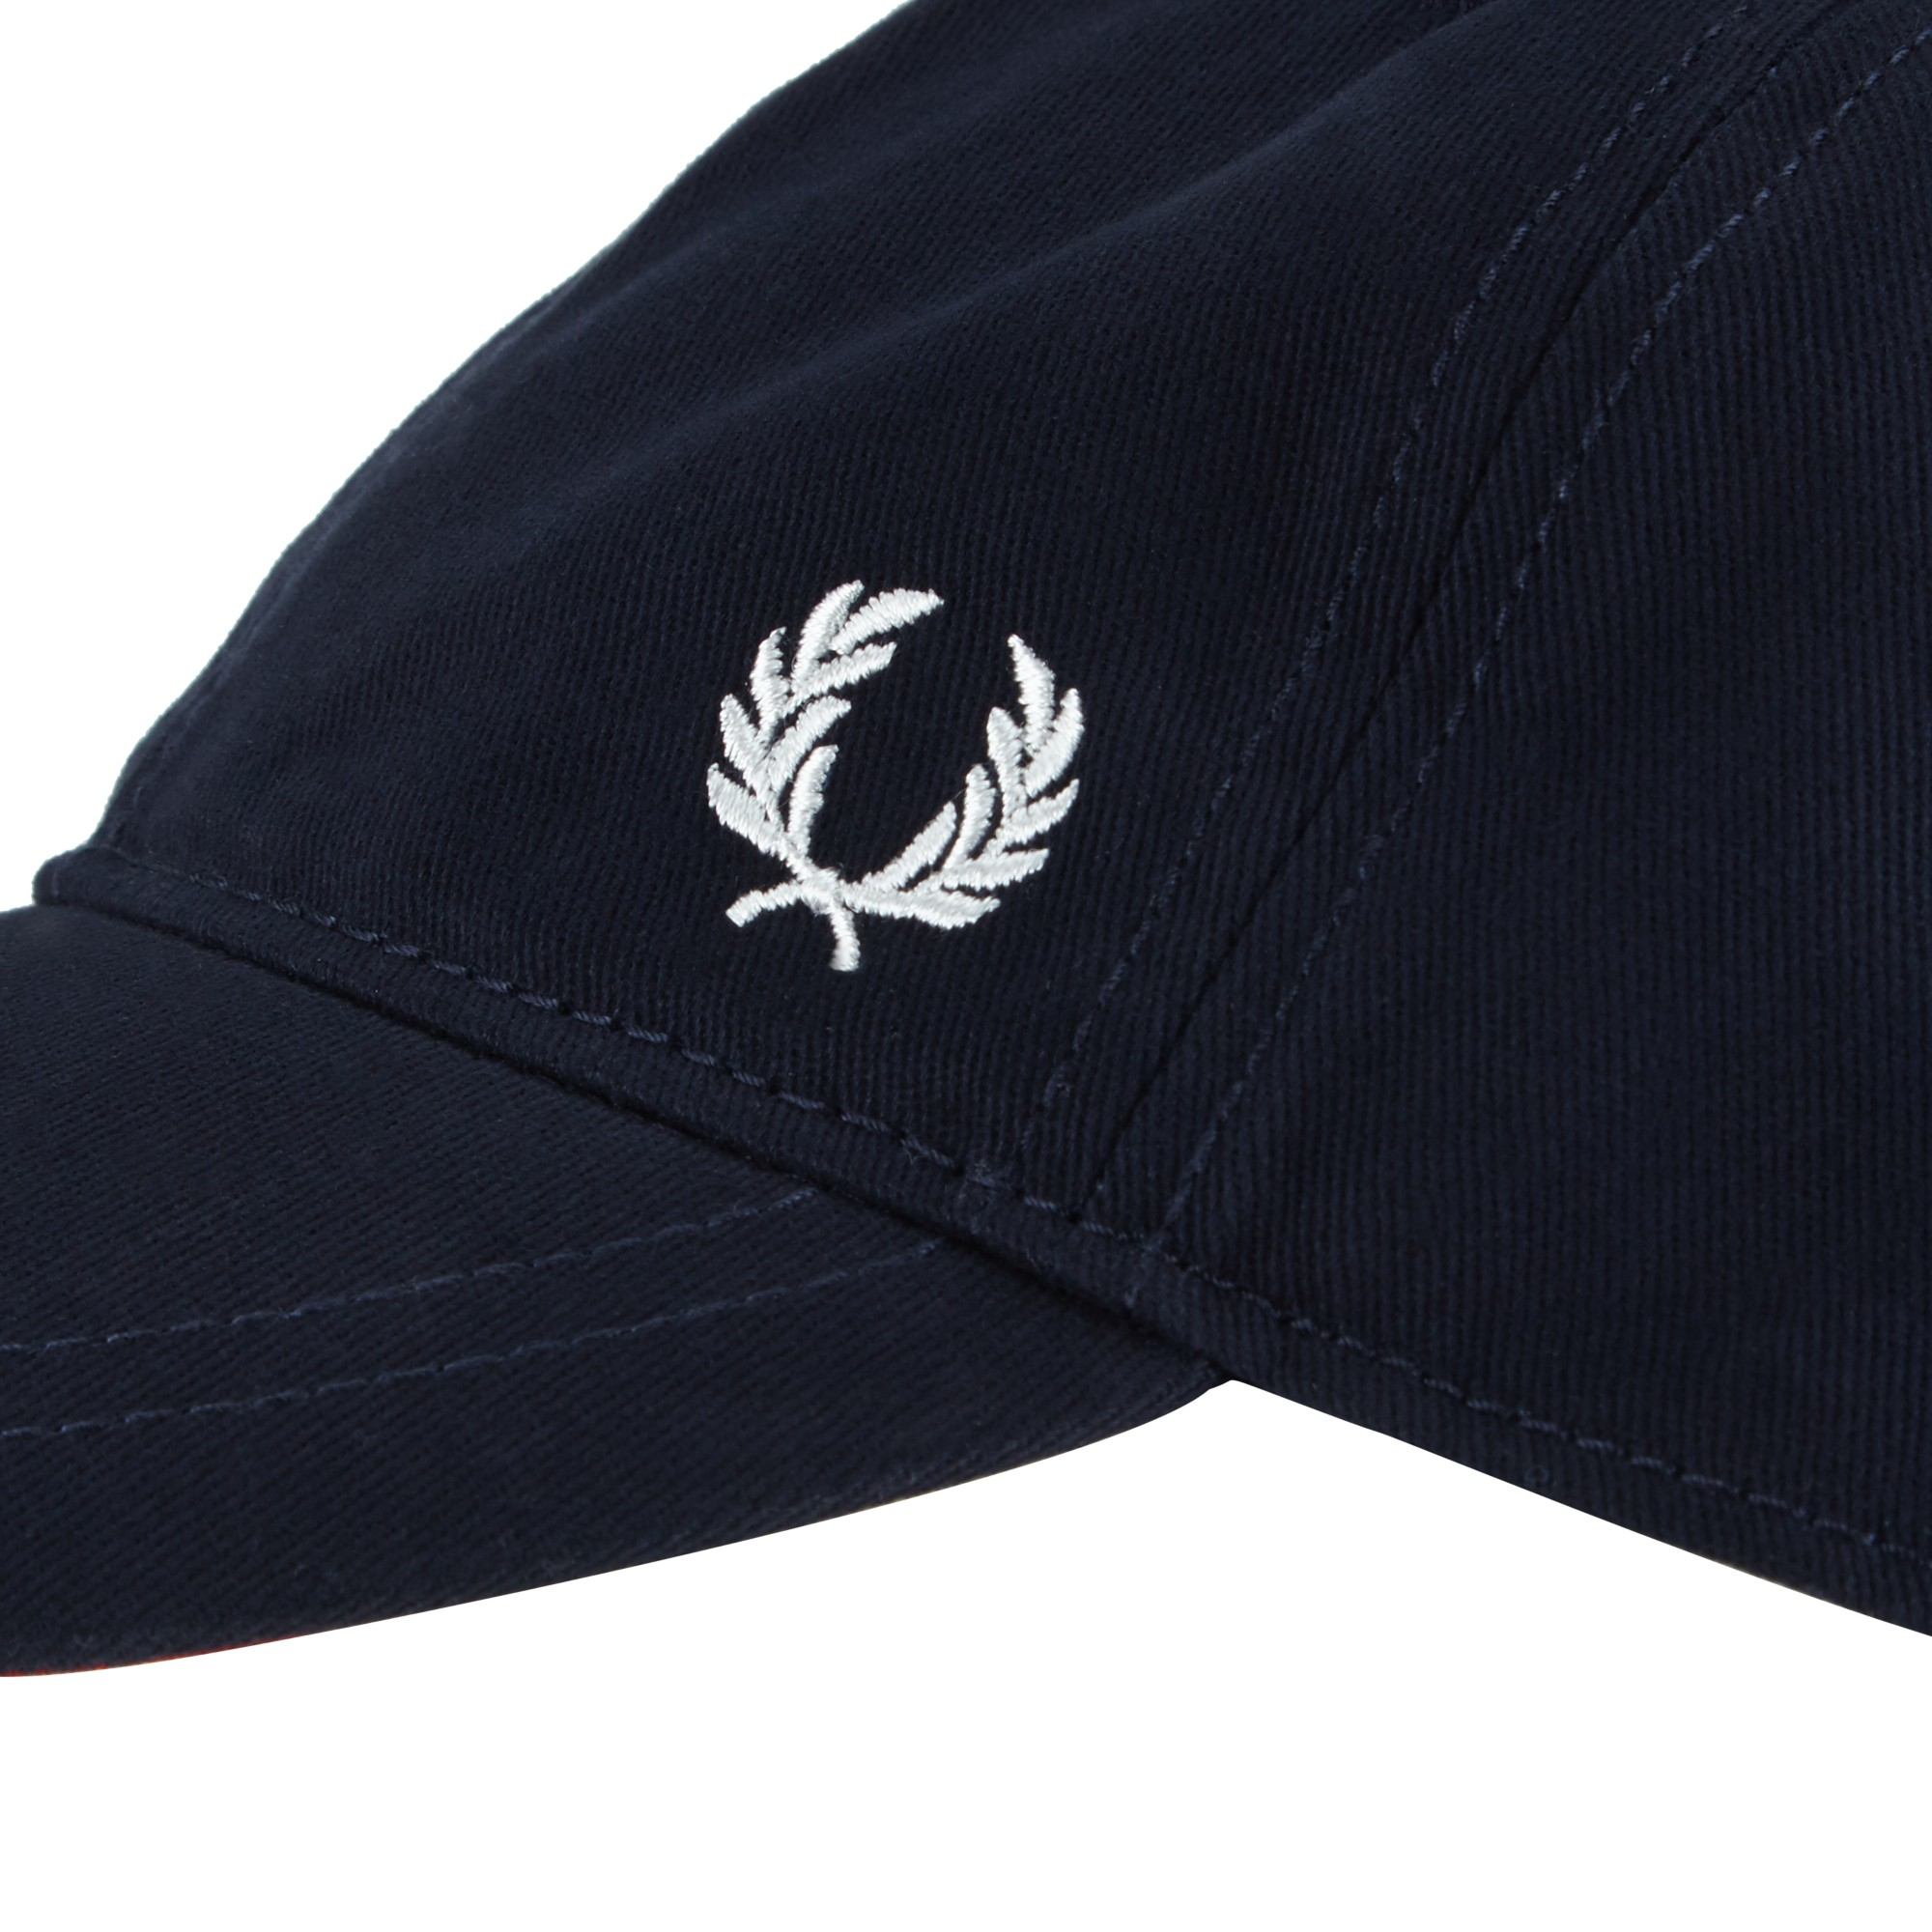 fred perry classic baseball cap in black for men lyst. Black Bedroom Furniture Sets. Home Design Ideas